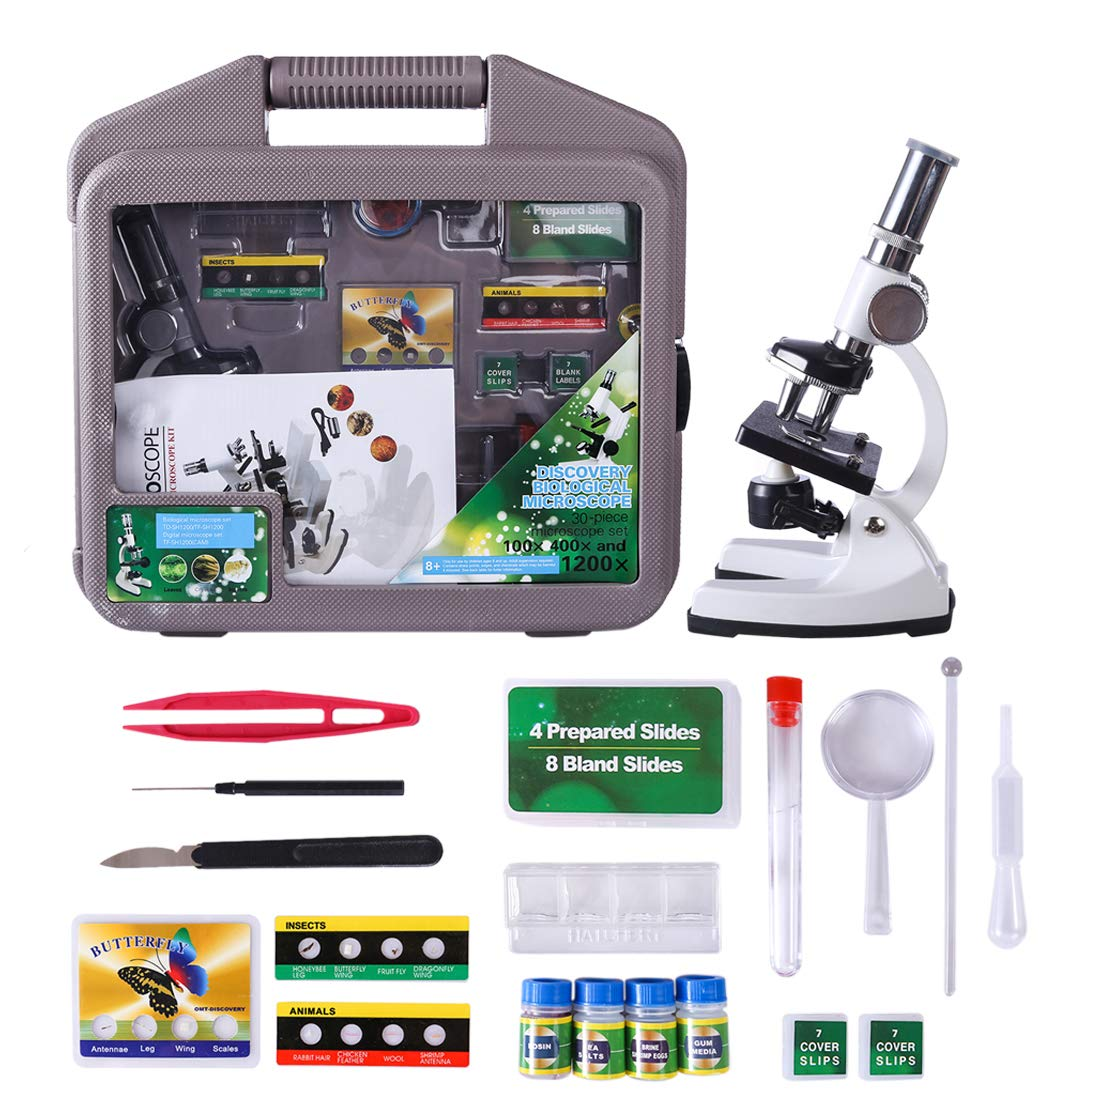 Yamix Science Kits Kids Microscope Beginner Microscope Kit, 1200x Magnification Kids Science Toys Children Microscope - White